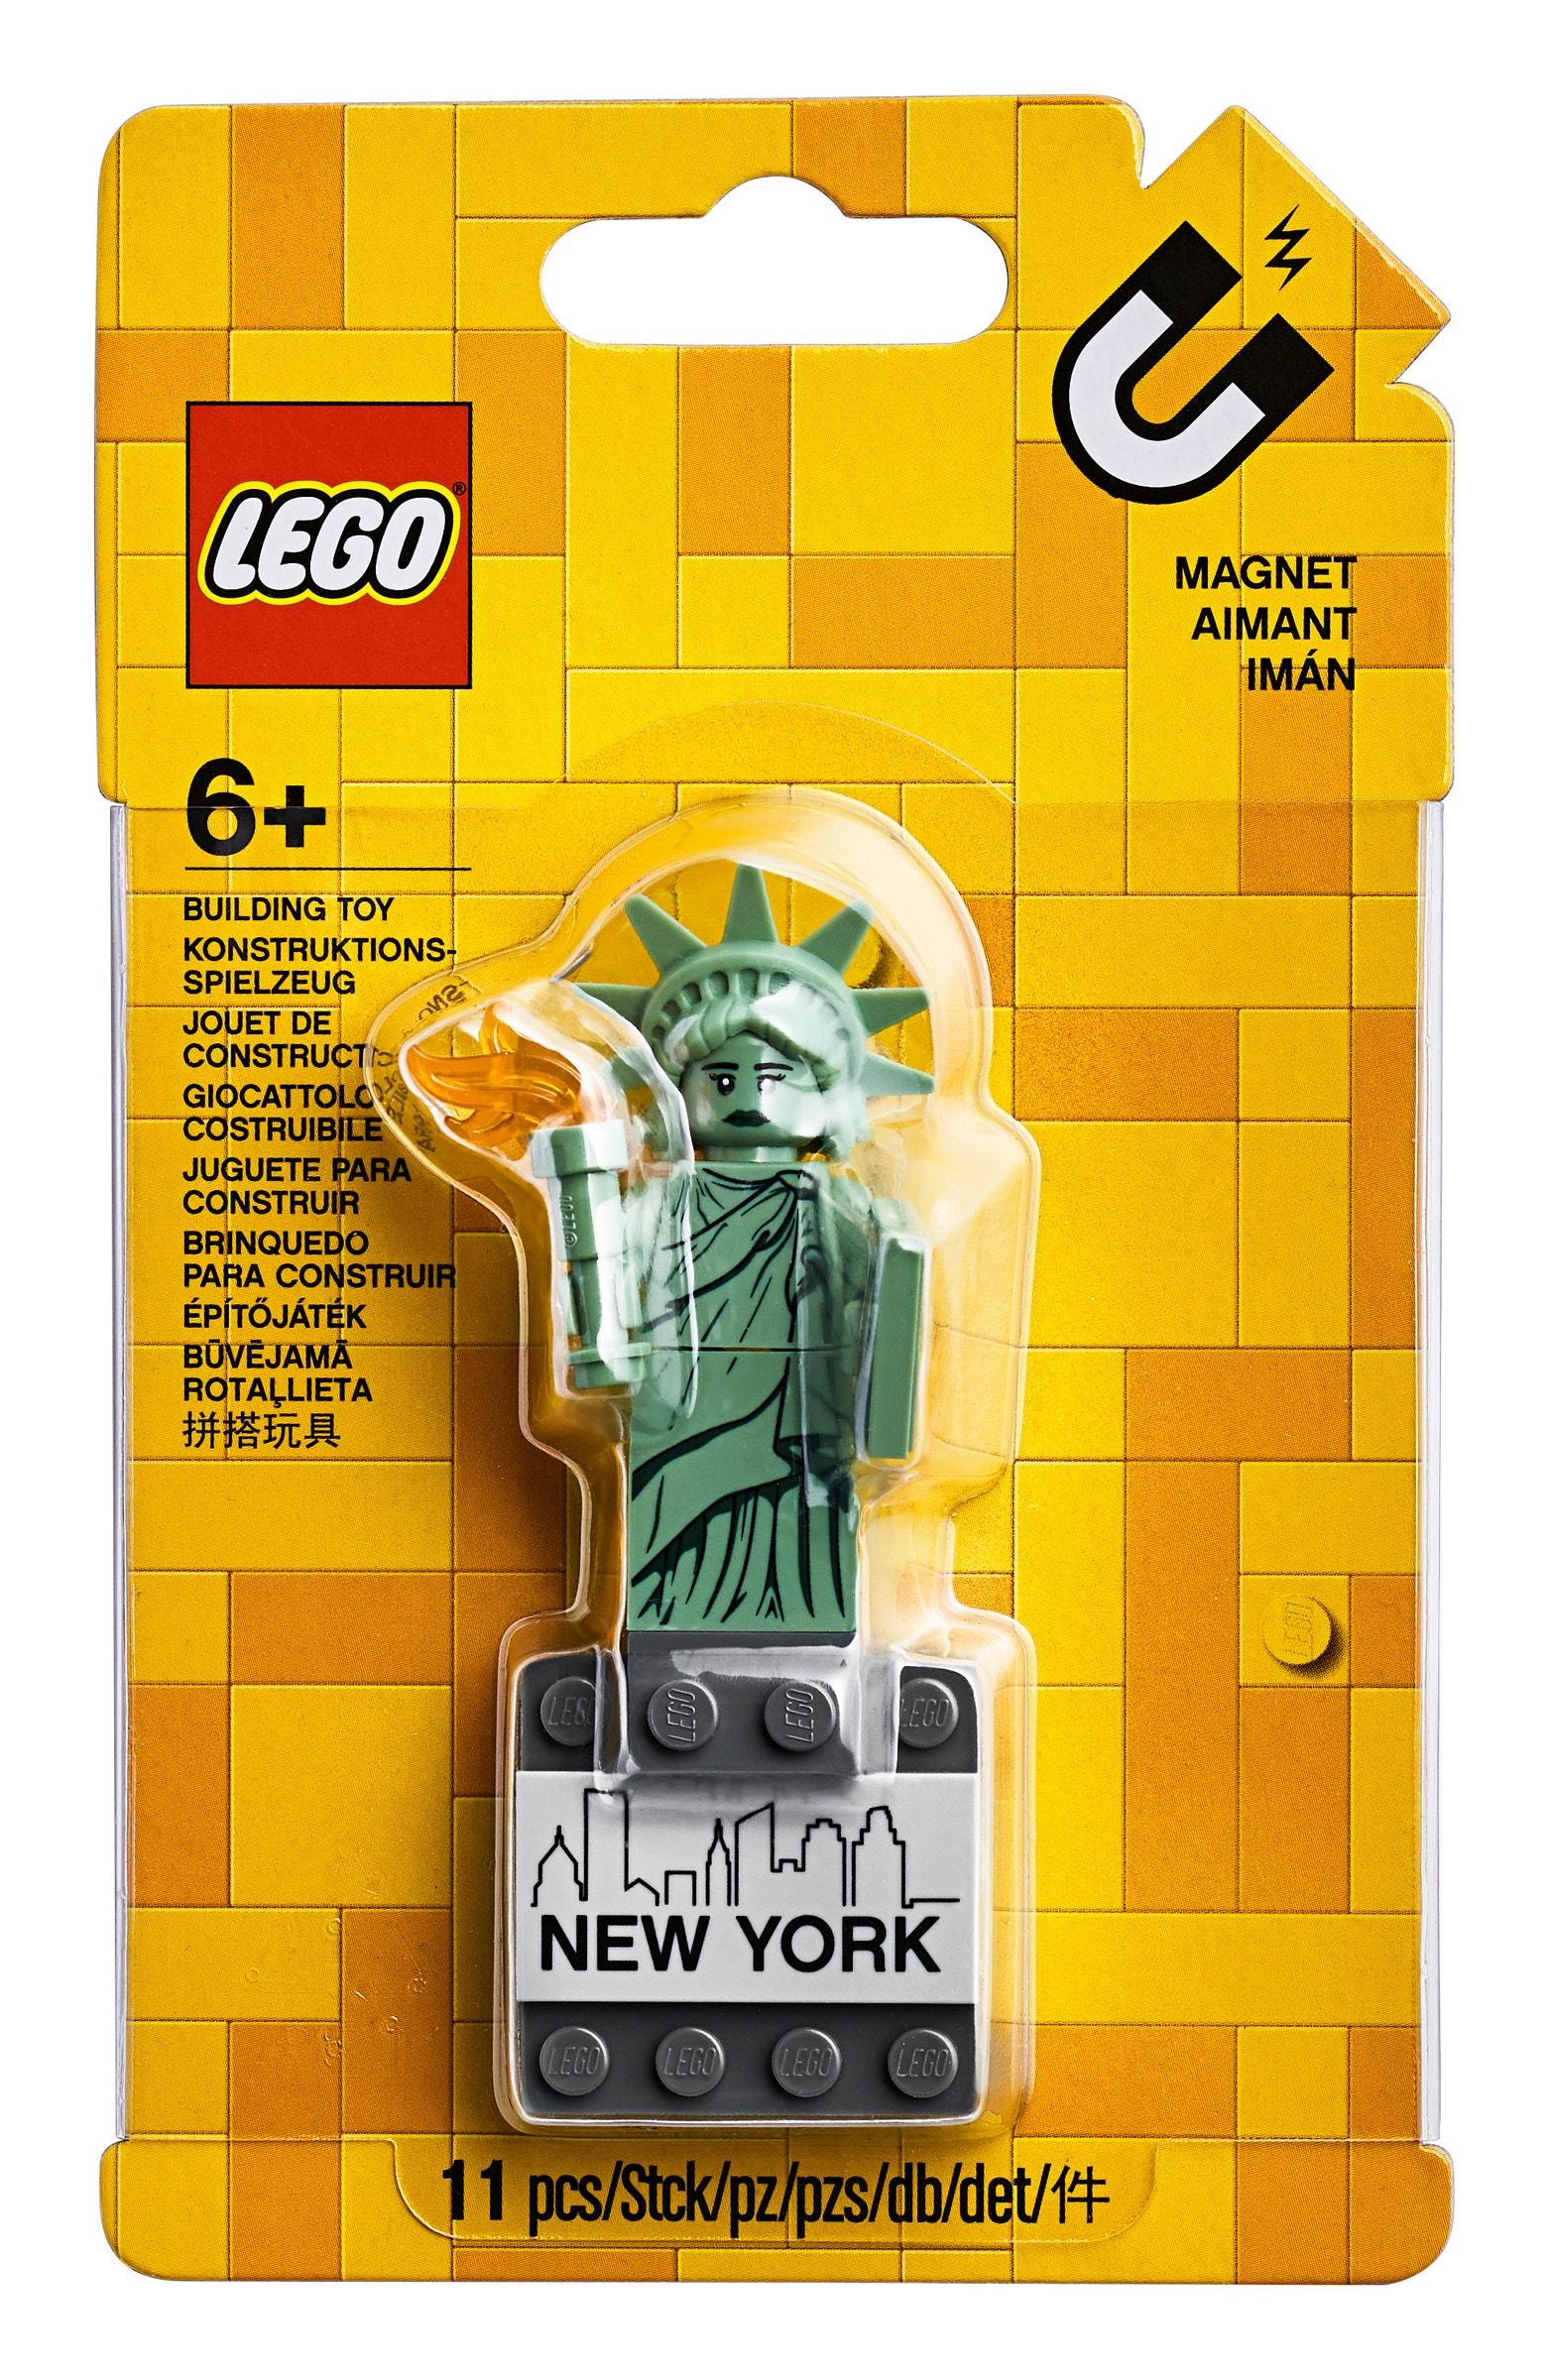 854031 Statue of Liberty Magnet